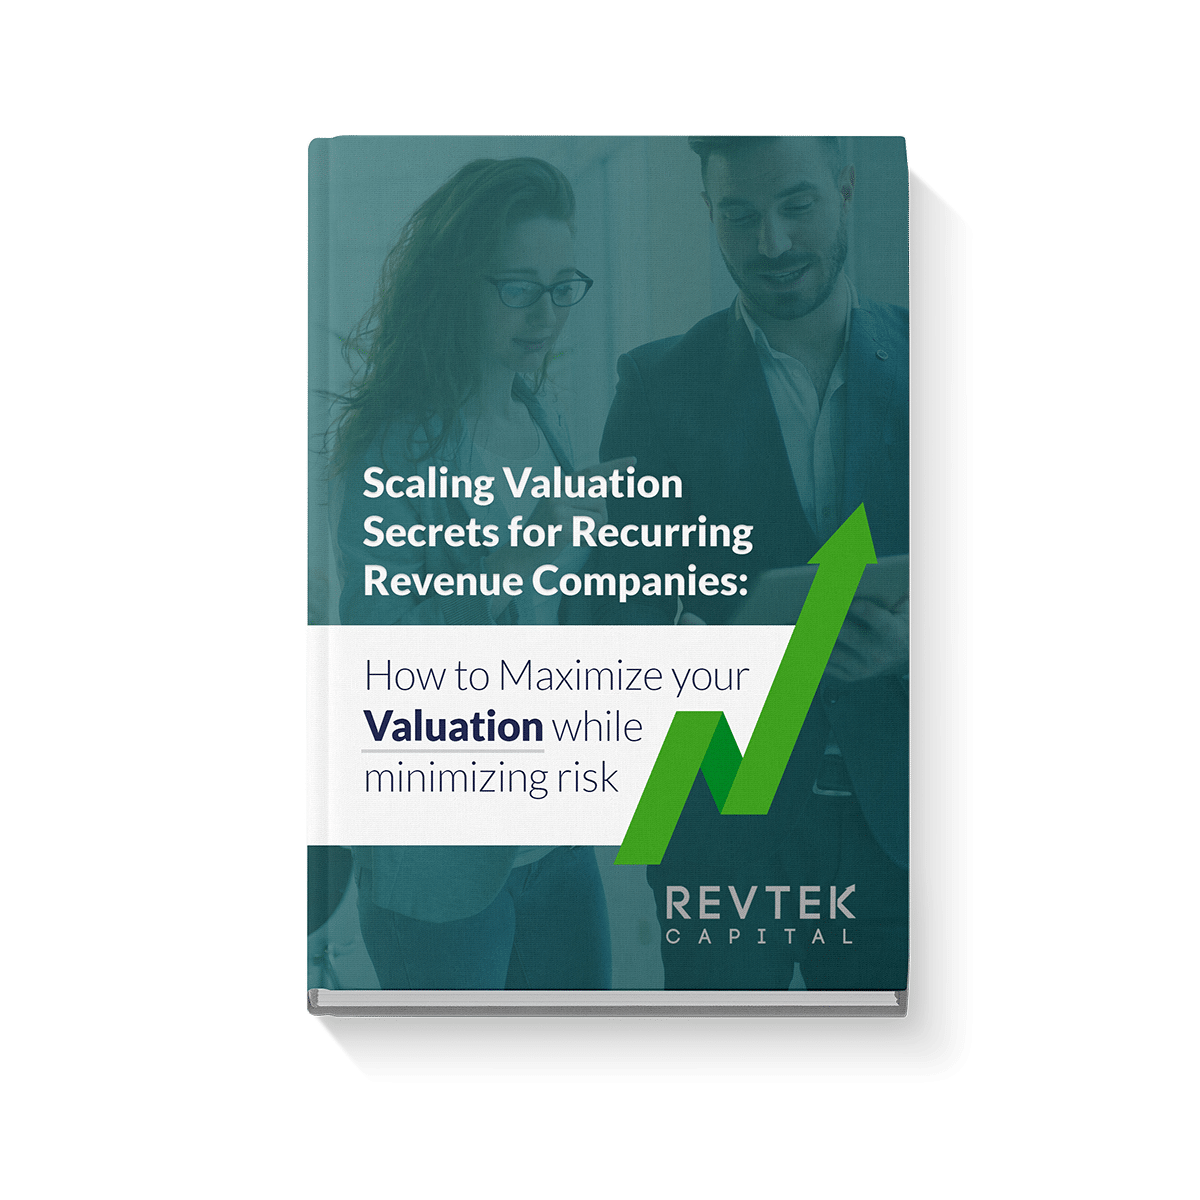 scaling_valuation_secrets__revtek__1.2